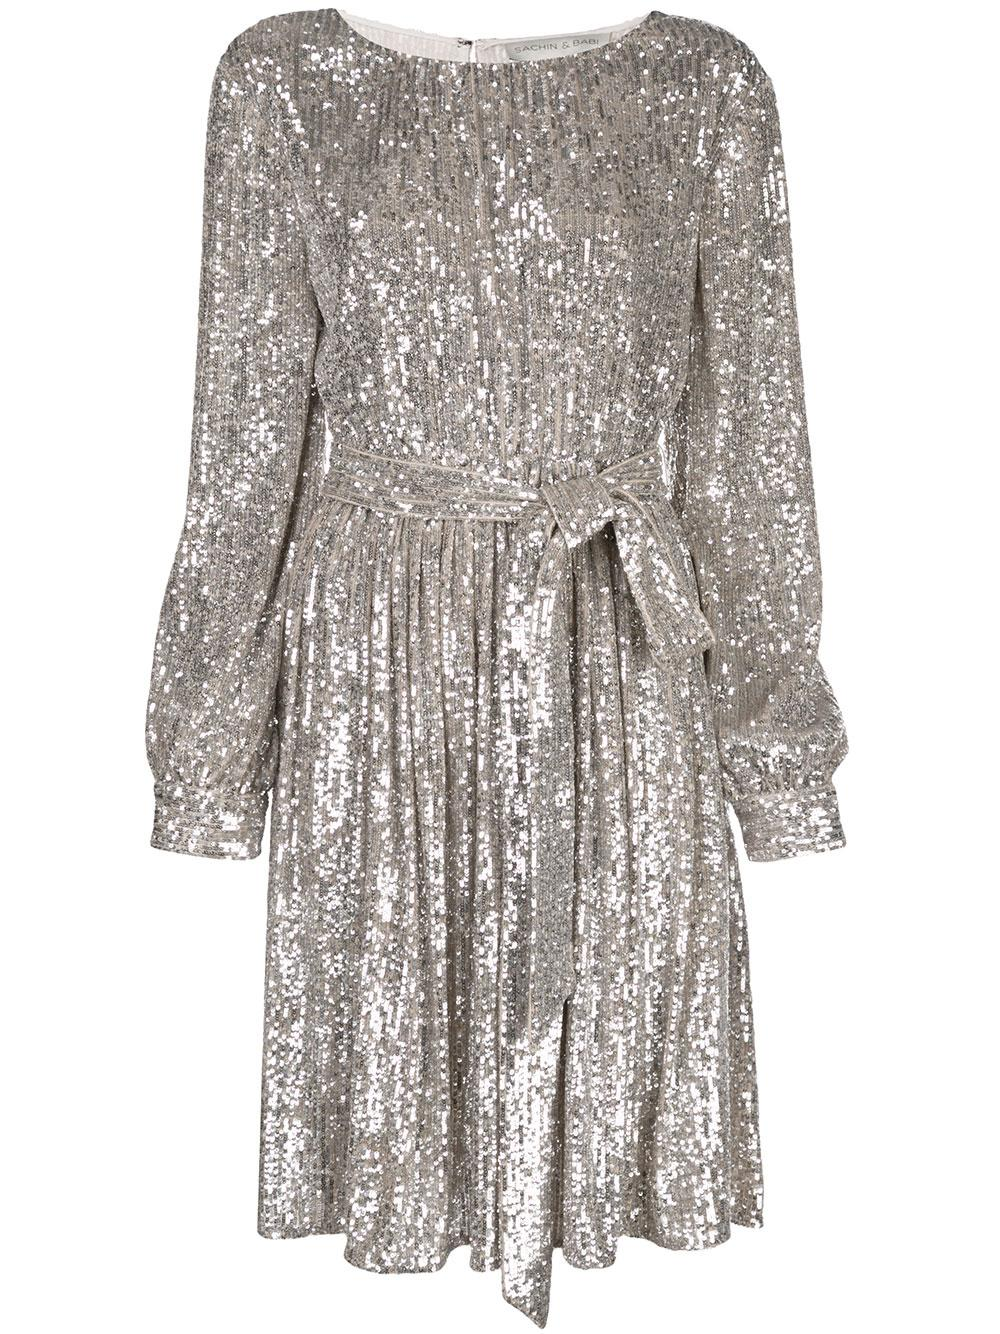 Chloe Long Sleeve Sequin Dress